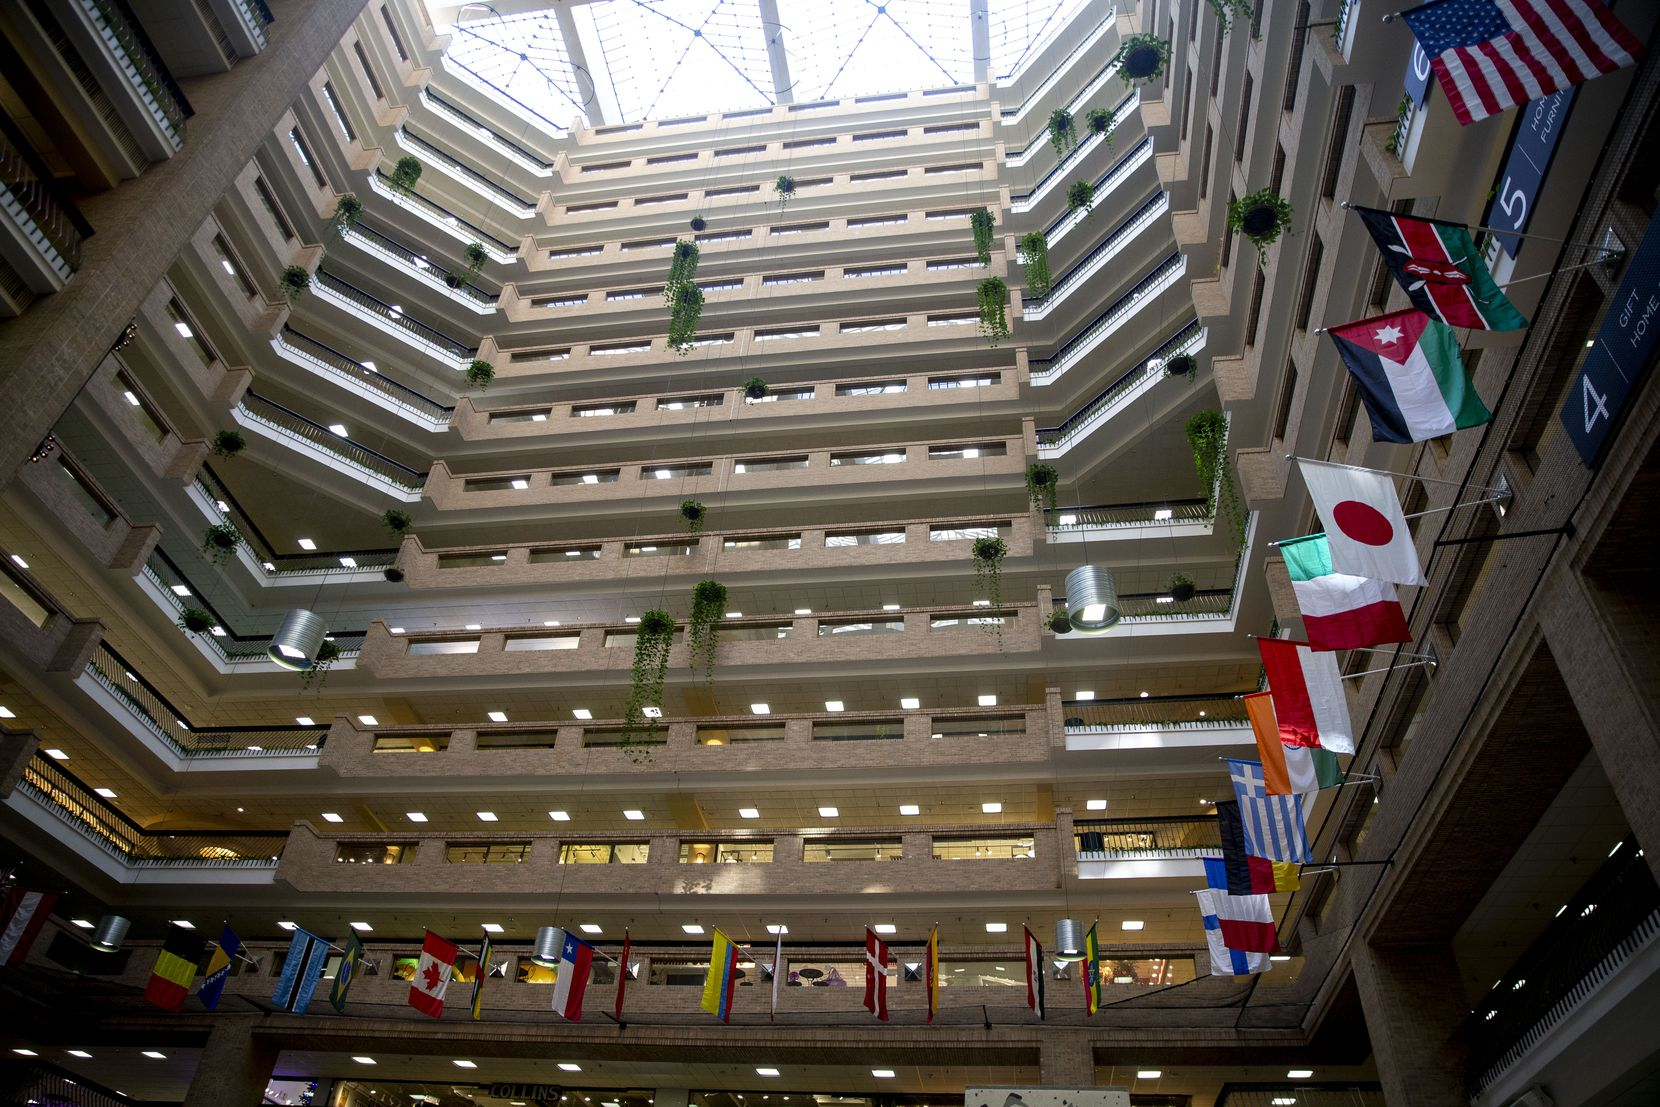 The atrium in the World Trade Center, which is a part of the Dallas Market Center. The building is 15 stories and is one of the largest wholesale markets in the U.S.